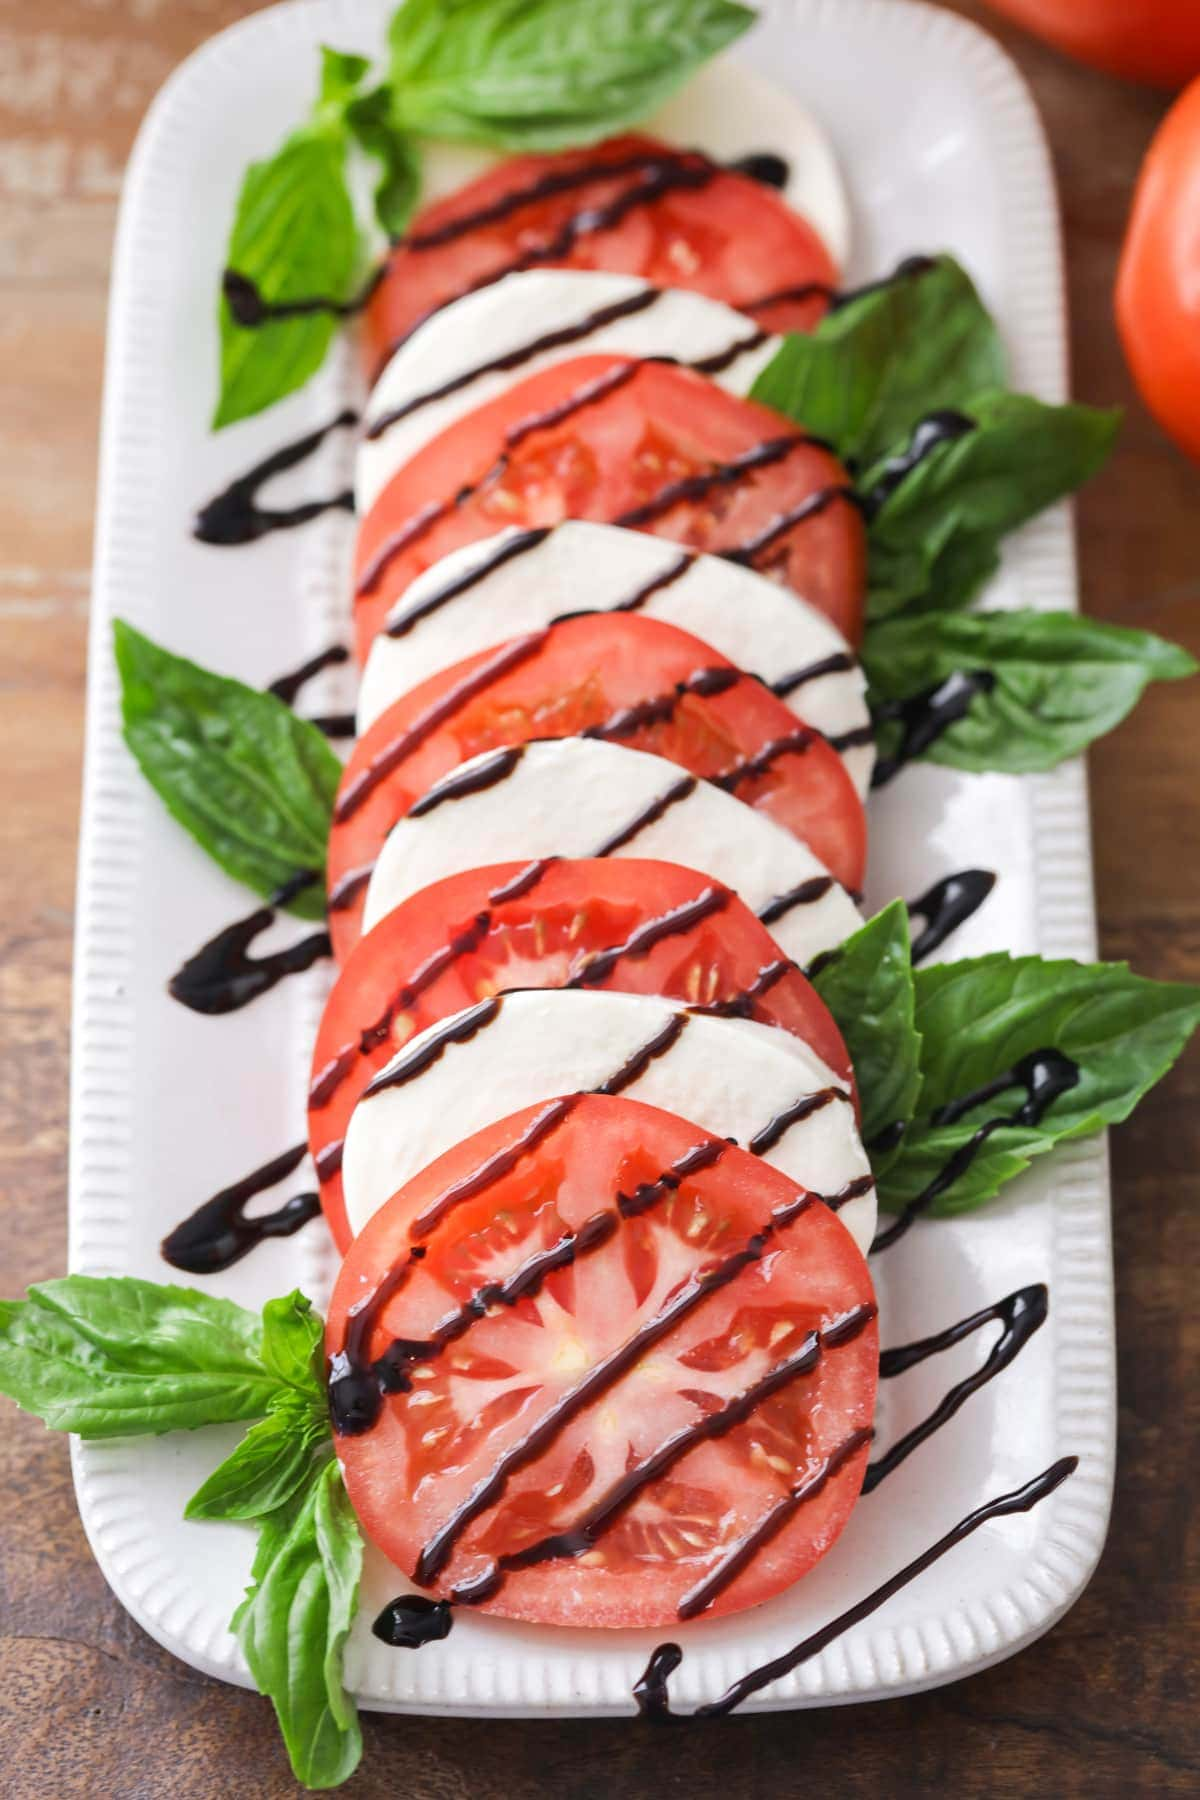 Tomato basil mozzarella salad with balsamic glaze drizzle